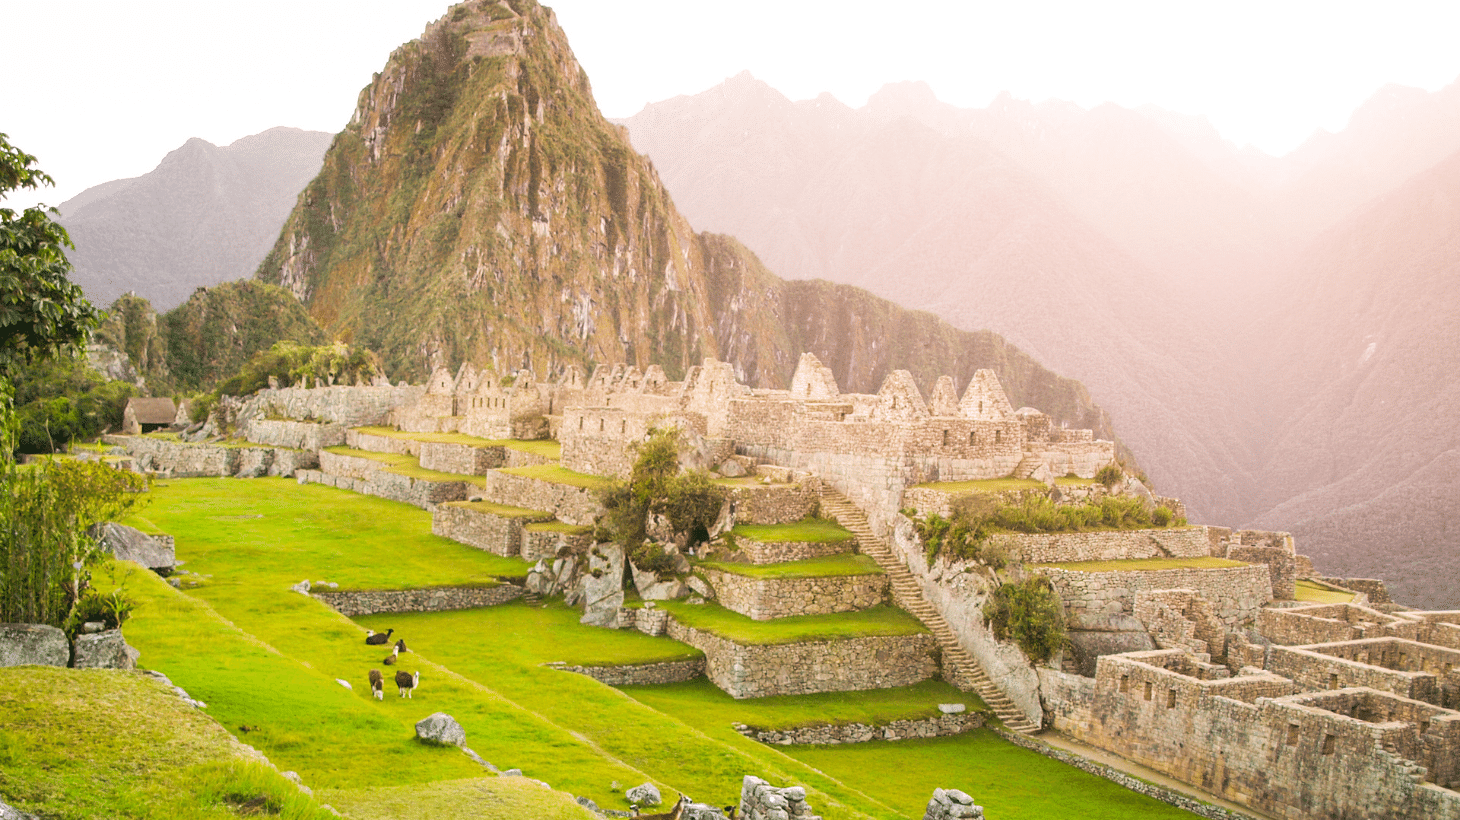 Discover the lost Inca city in Peru